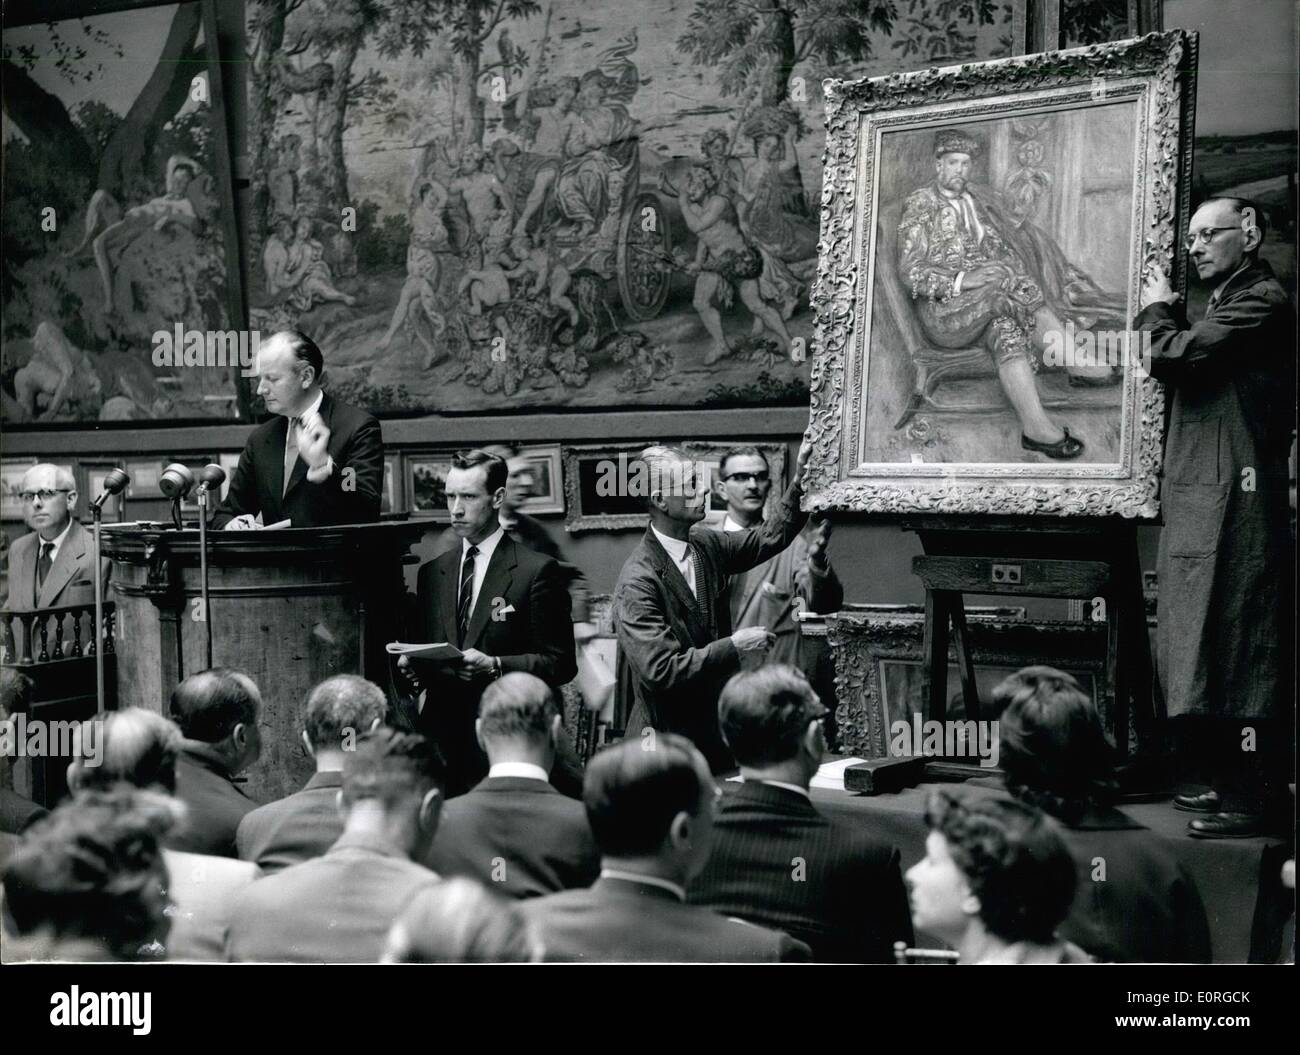 Jul. 07, 1959 - Paintings From Chrysler Collection - Sold in London Renoir Brings. £22,000 ...A number of painting from the fabulous collection belonging to American millionaire Walter P. Chrysler Jnr. were put up for auction at Sotheby's this morning. Photo shows: Scene during the sale of ''Portrait D'Ambroise Vollard an Toreador'' - by Pierre-Auguste Renoir - dated 1917. It went for £22,000 - Stock Image